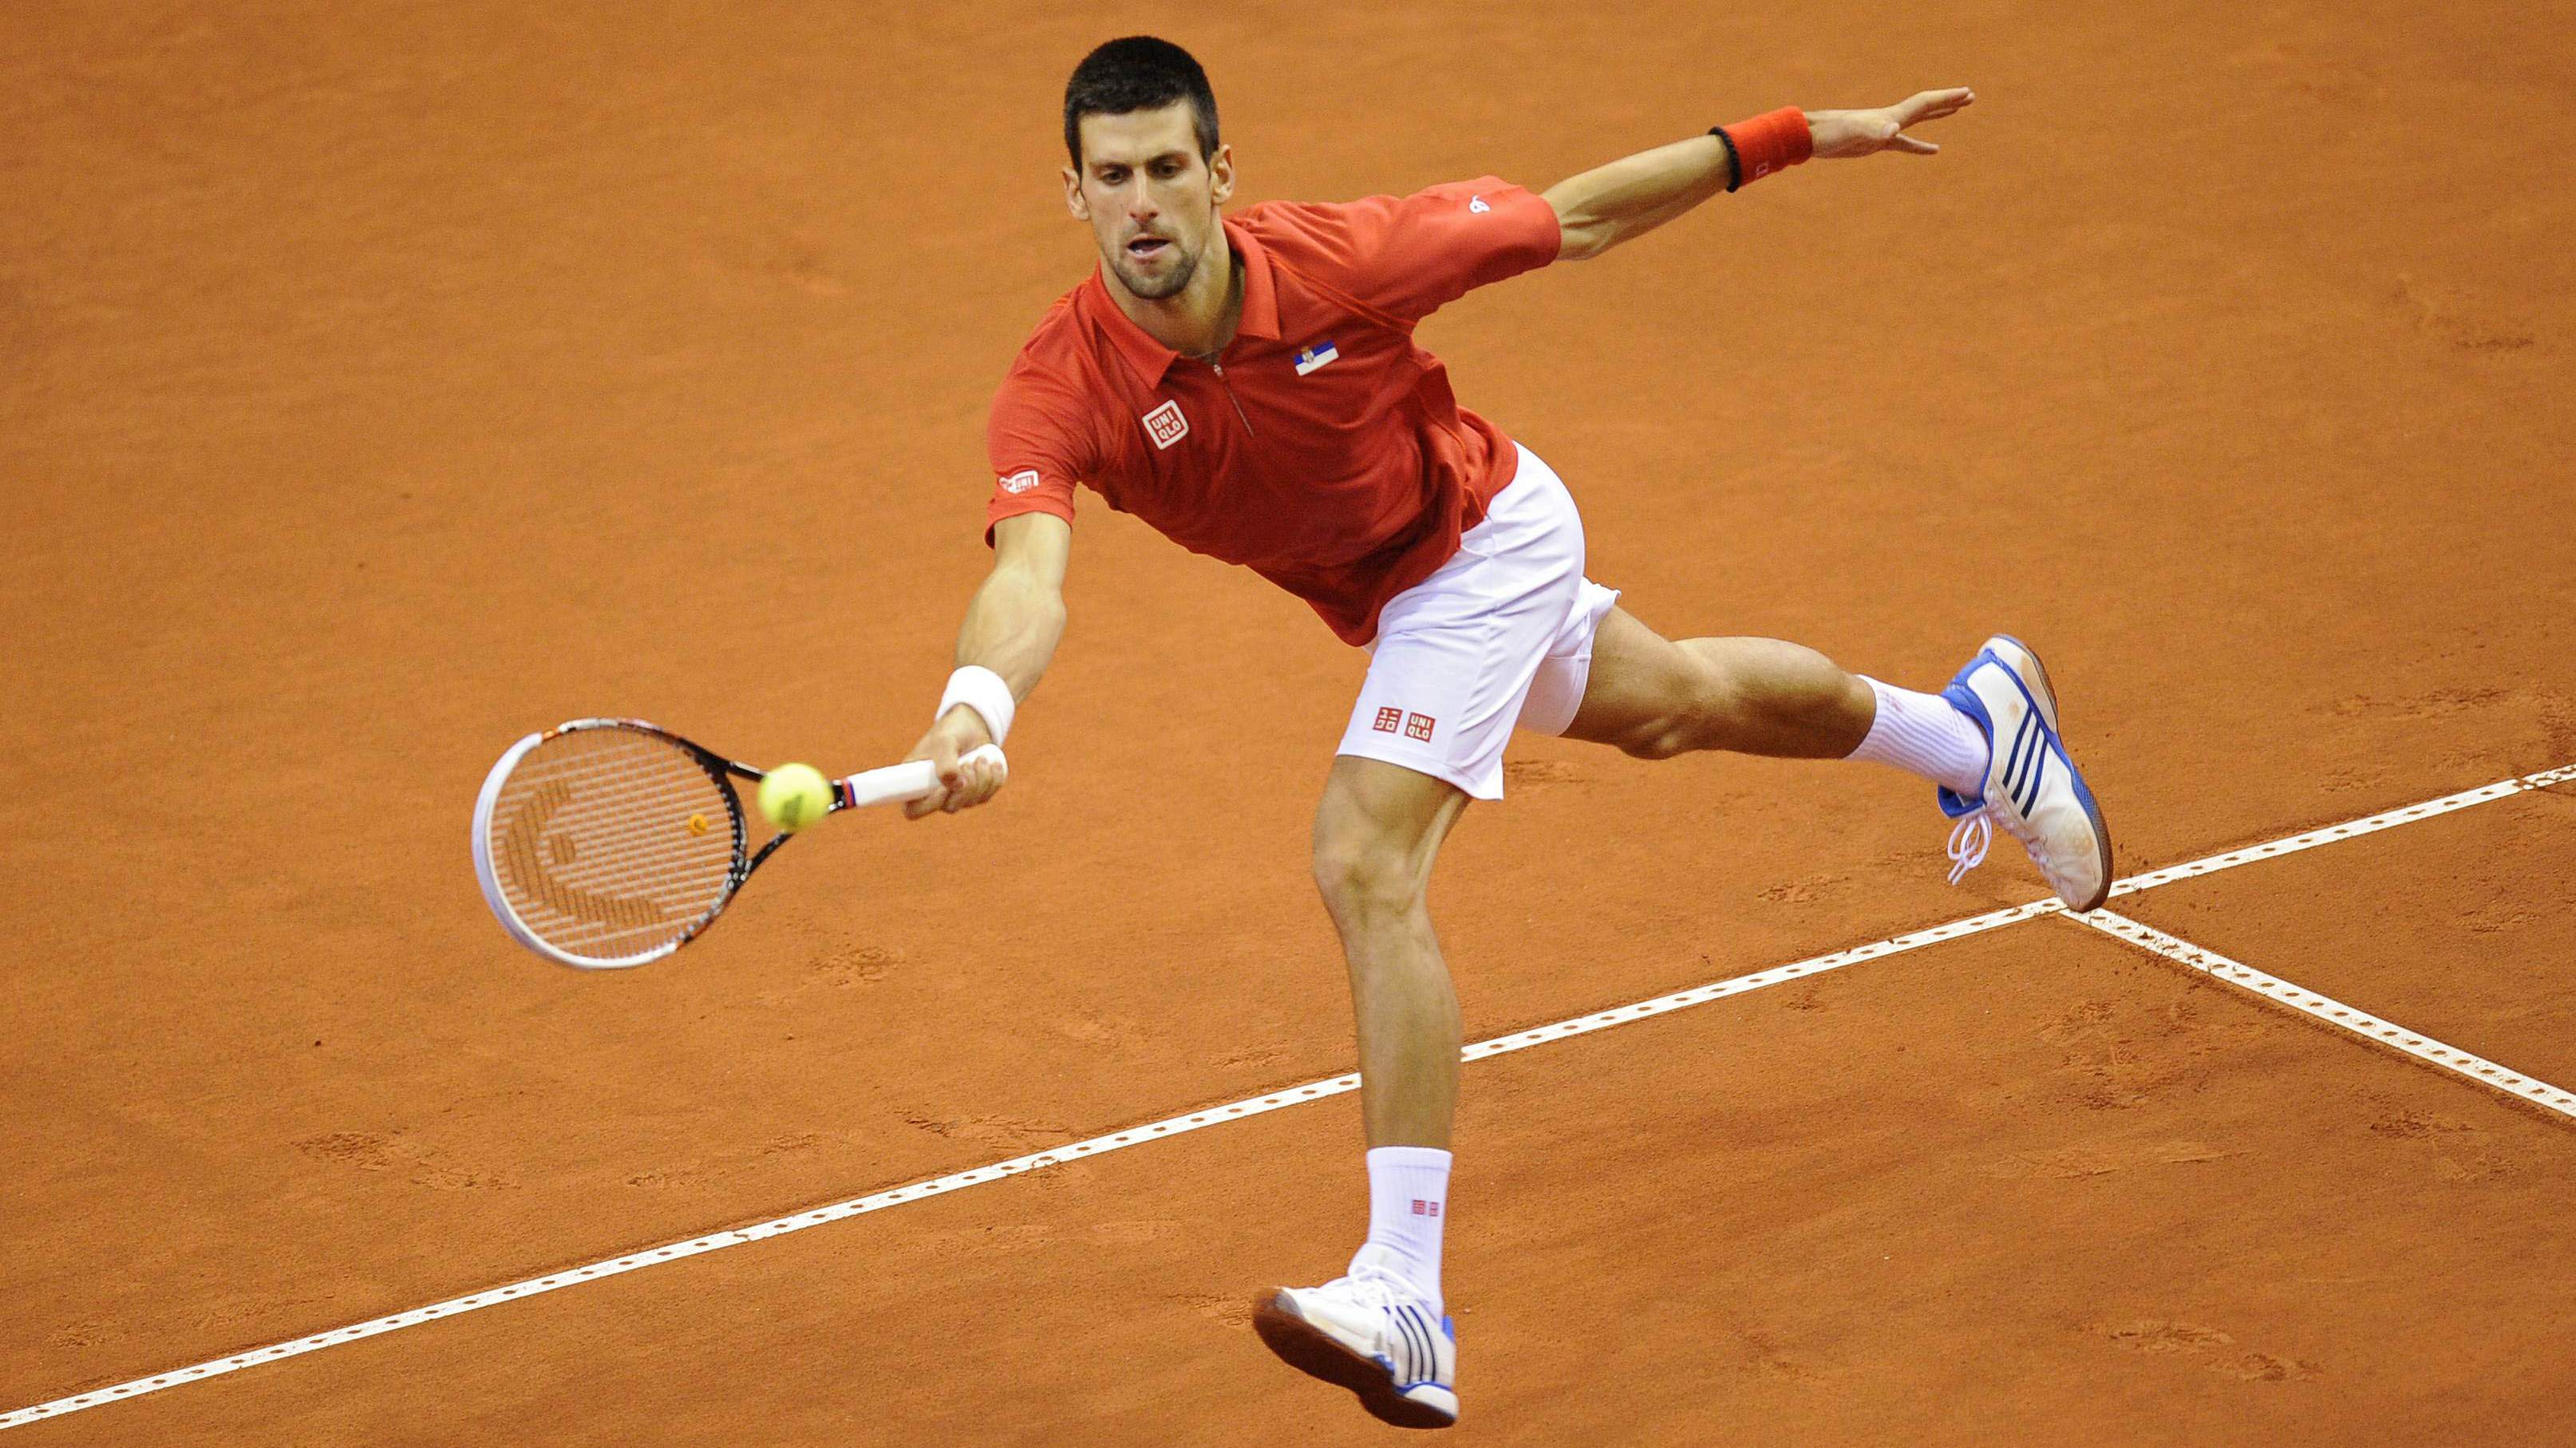 Court concerns: Serbia's Novak Djokovic runs down a shot from Belgium's Olivier Rochus in their Davis Cup singles match on Friday in Charleroi, Belgium. Djokovic won 6-3, 6-2, 6-2 to help give Serbia a 2-0 lead in the tie. | AFP-JIJI